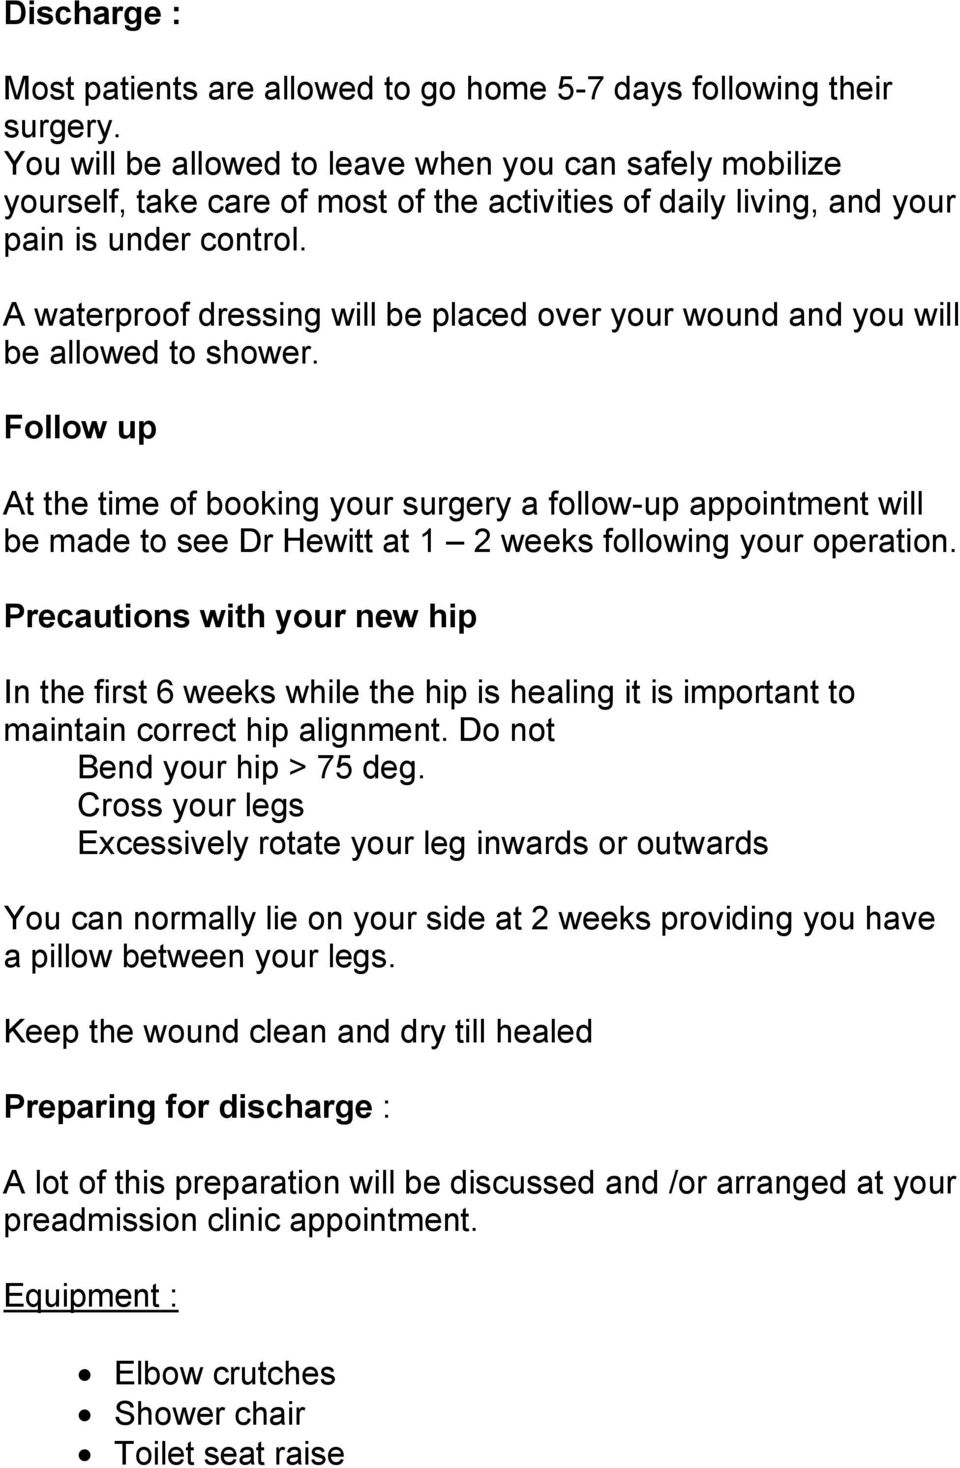 A waterproof dressing will be placed over your wound and you will be allowed to shower.